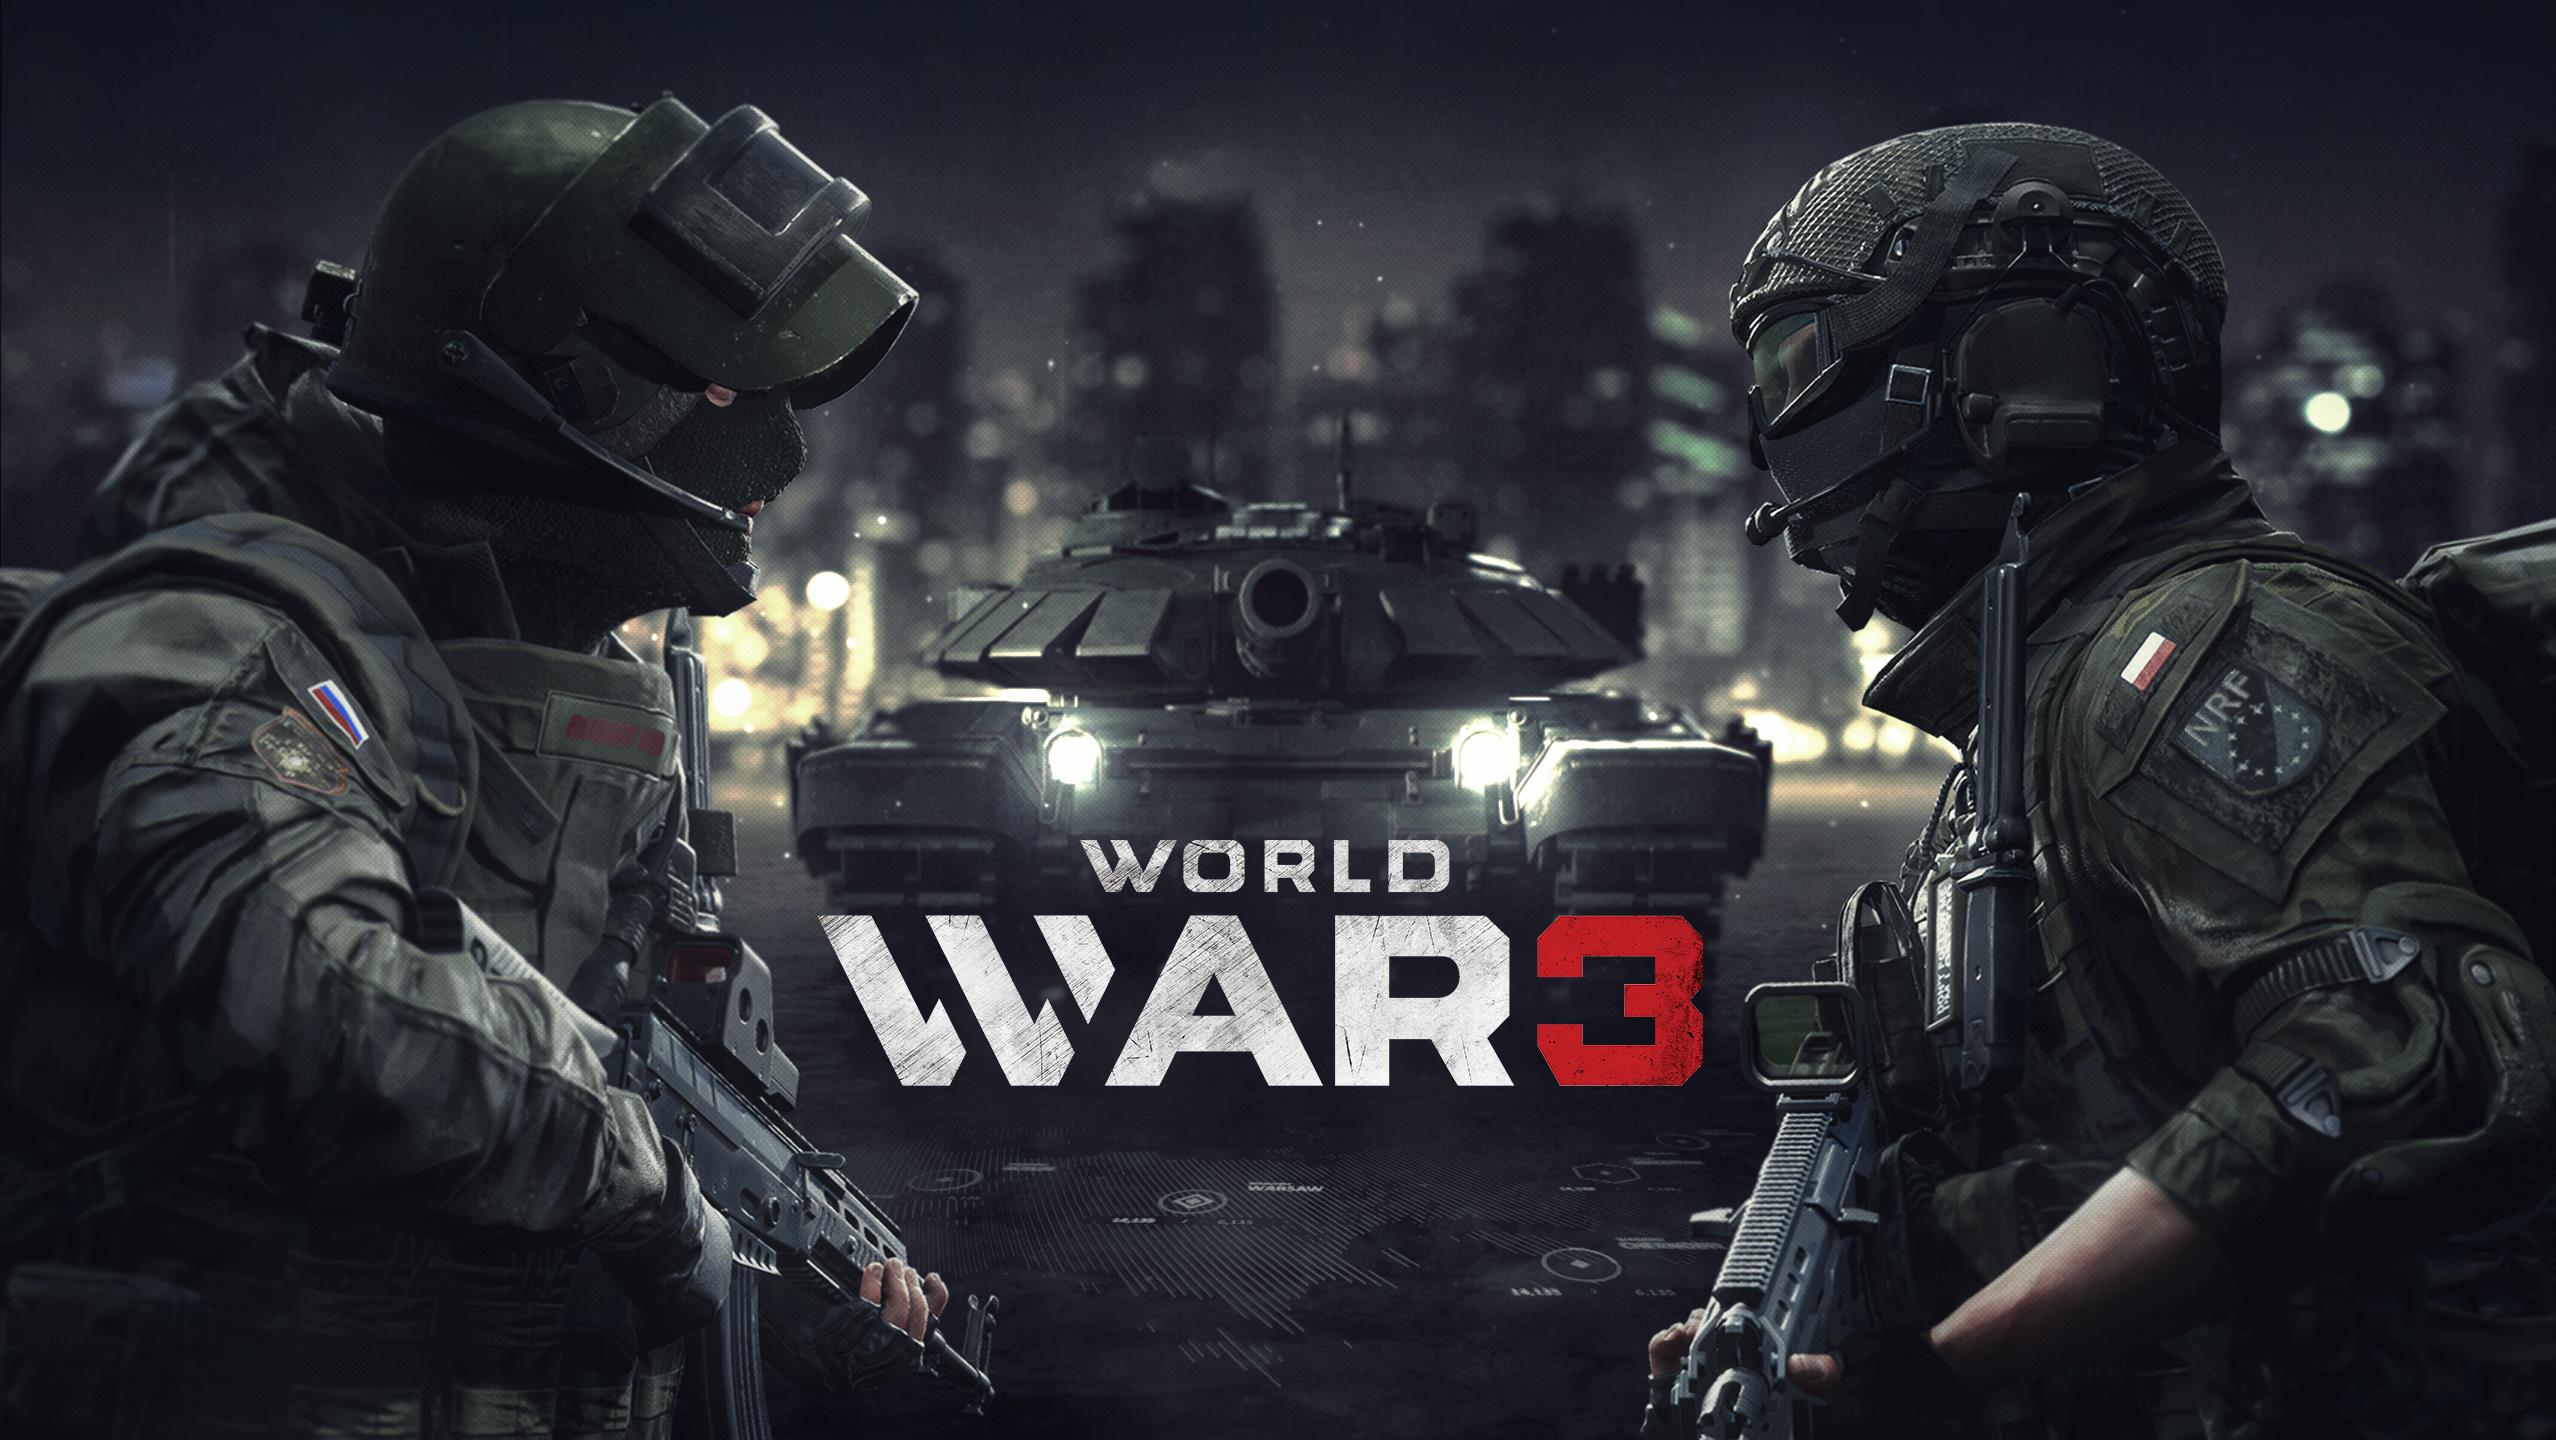 World war 3 is a battlefield style modern day shooter coming to world war 3 is a battlefield style modern day shooter coming to steam this year vg247 gumiabroncs